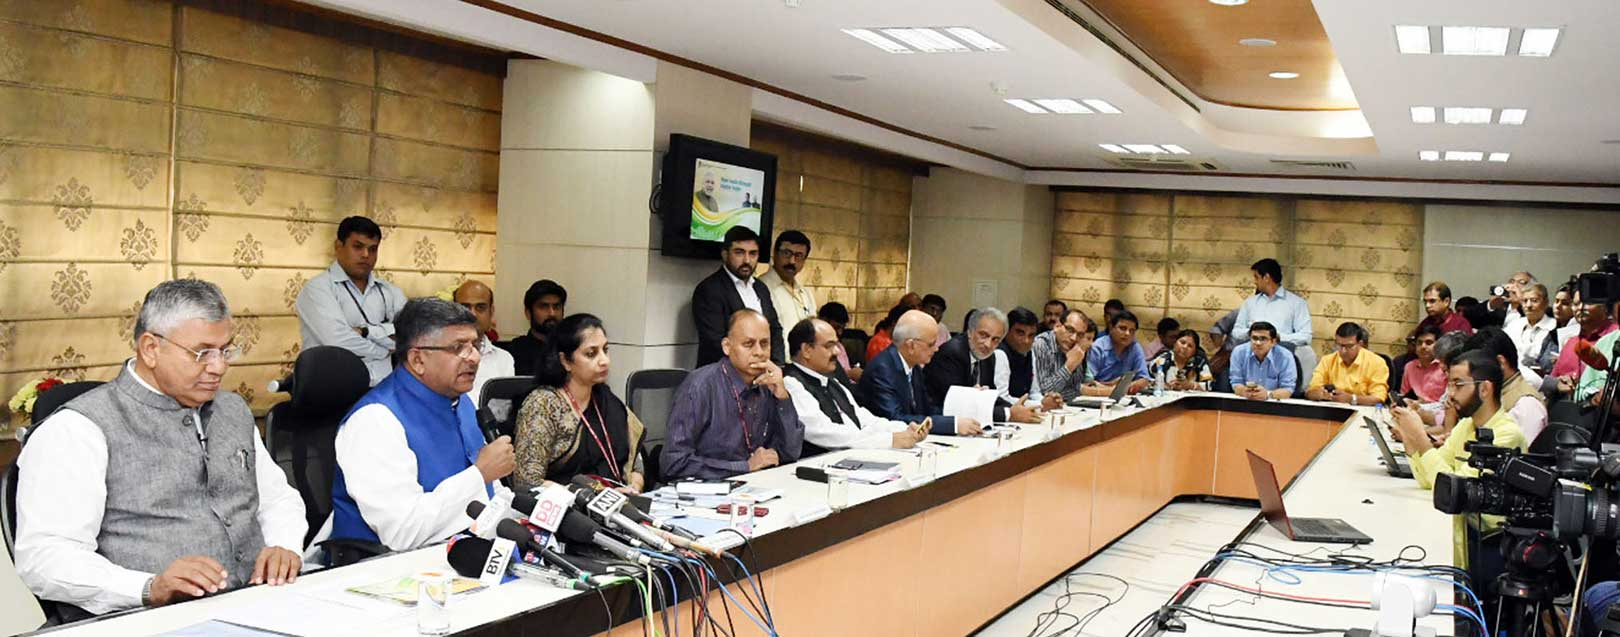 IT industry to create 25-30 lakh jobs by 2025: Prasad